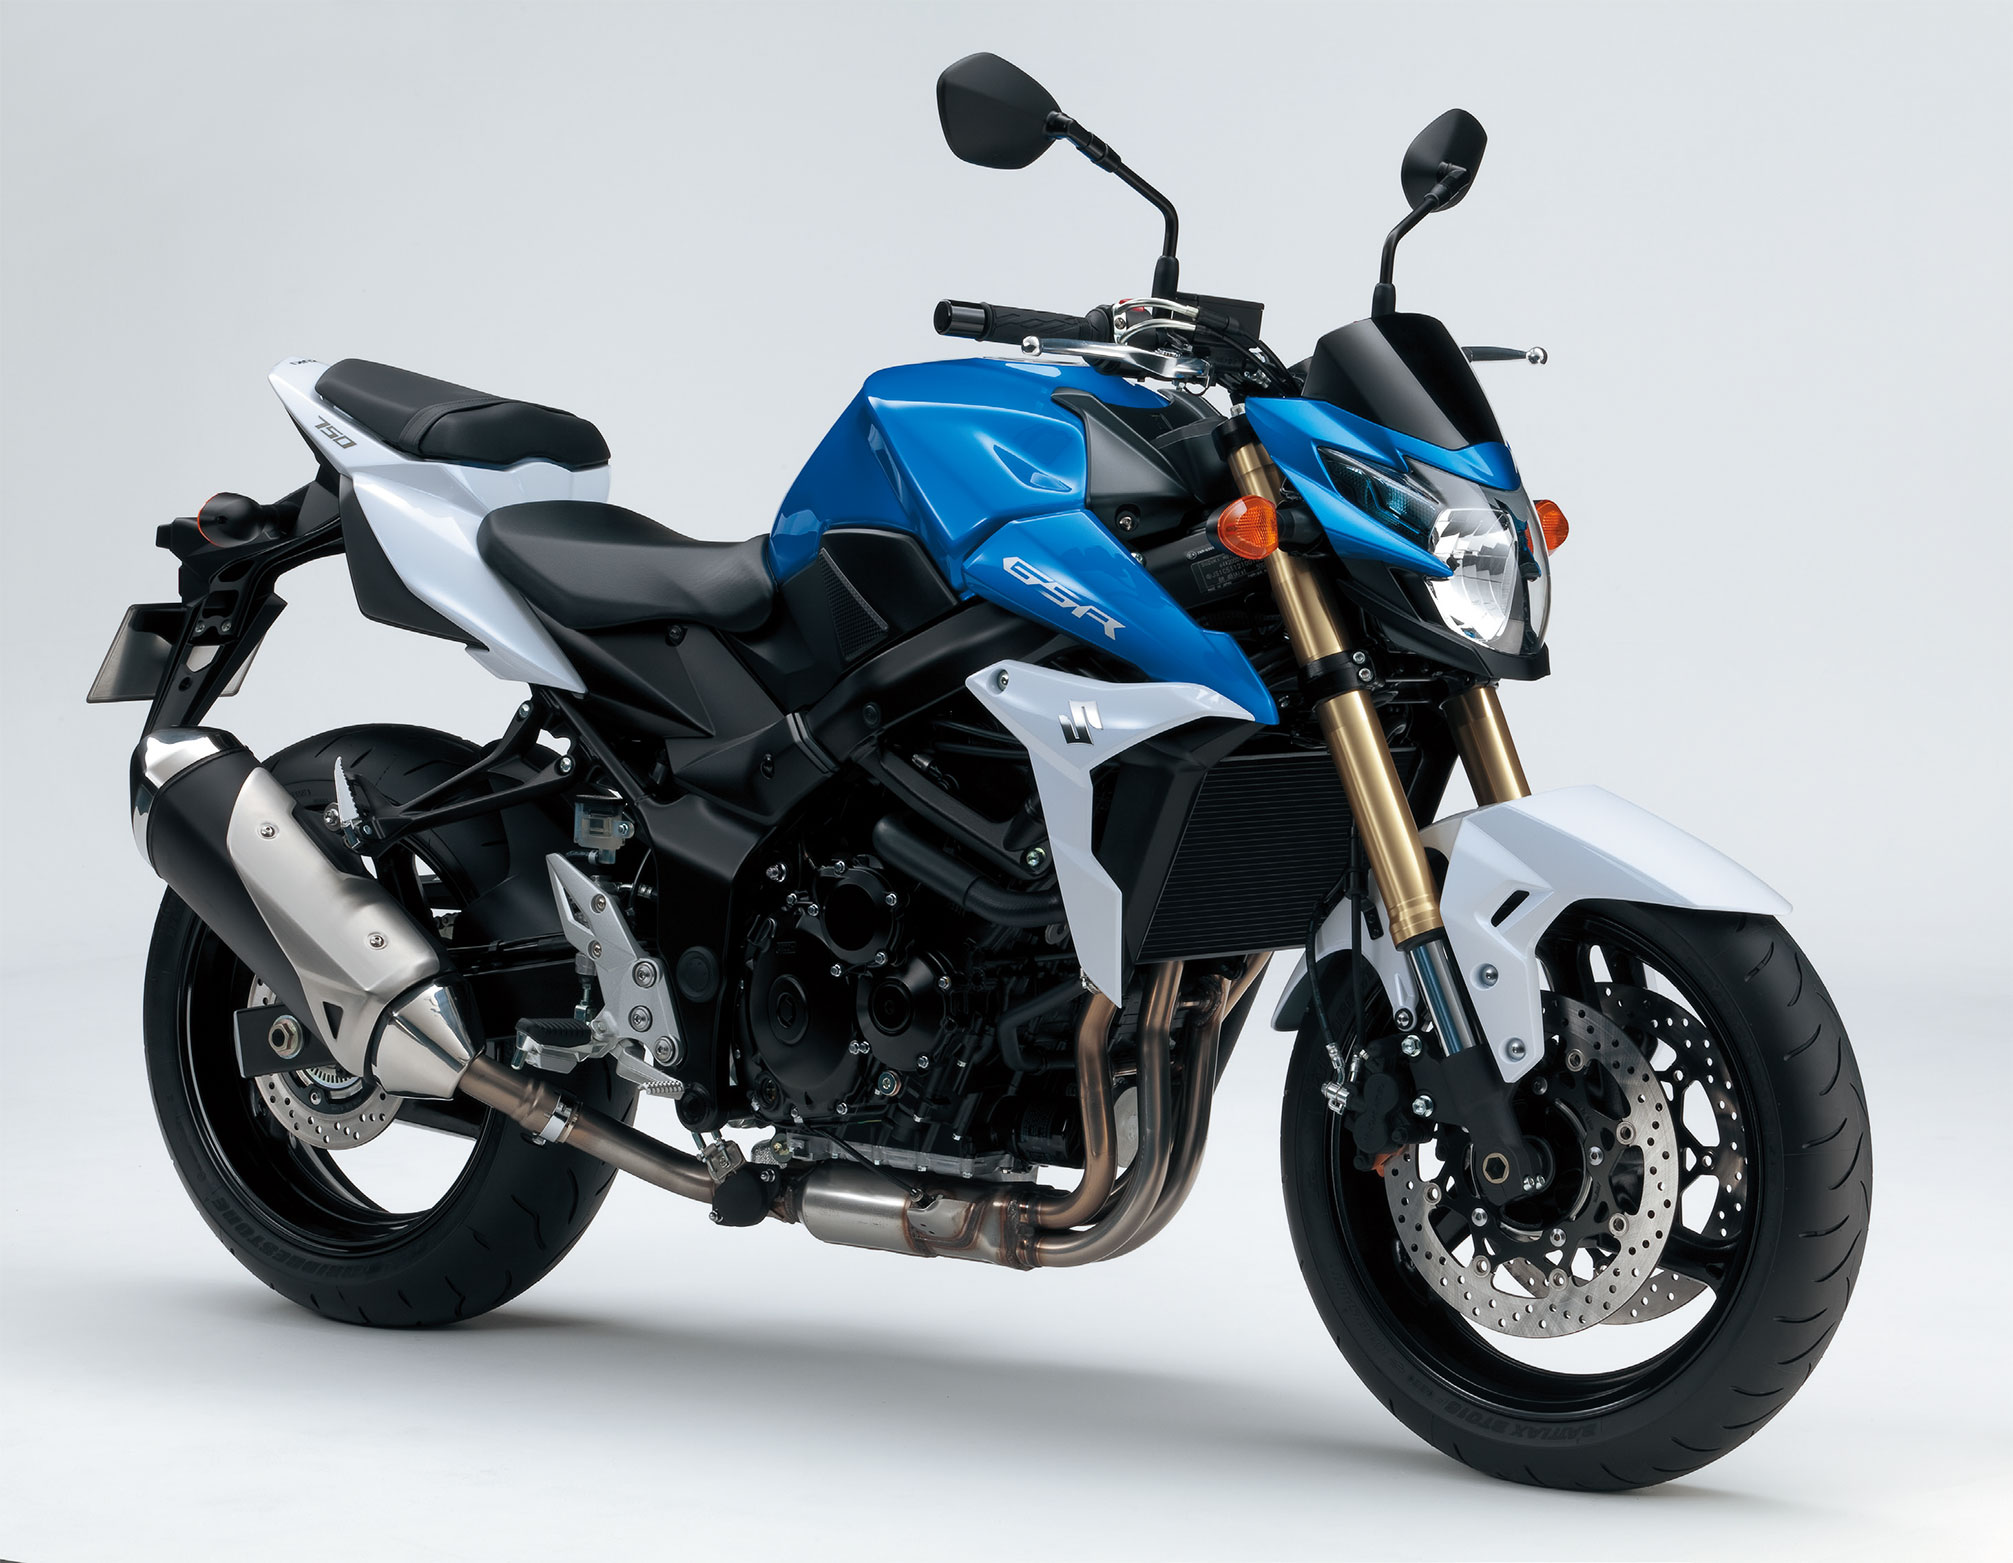 2013 suzuki gsr750 review - photo #1